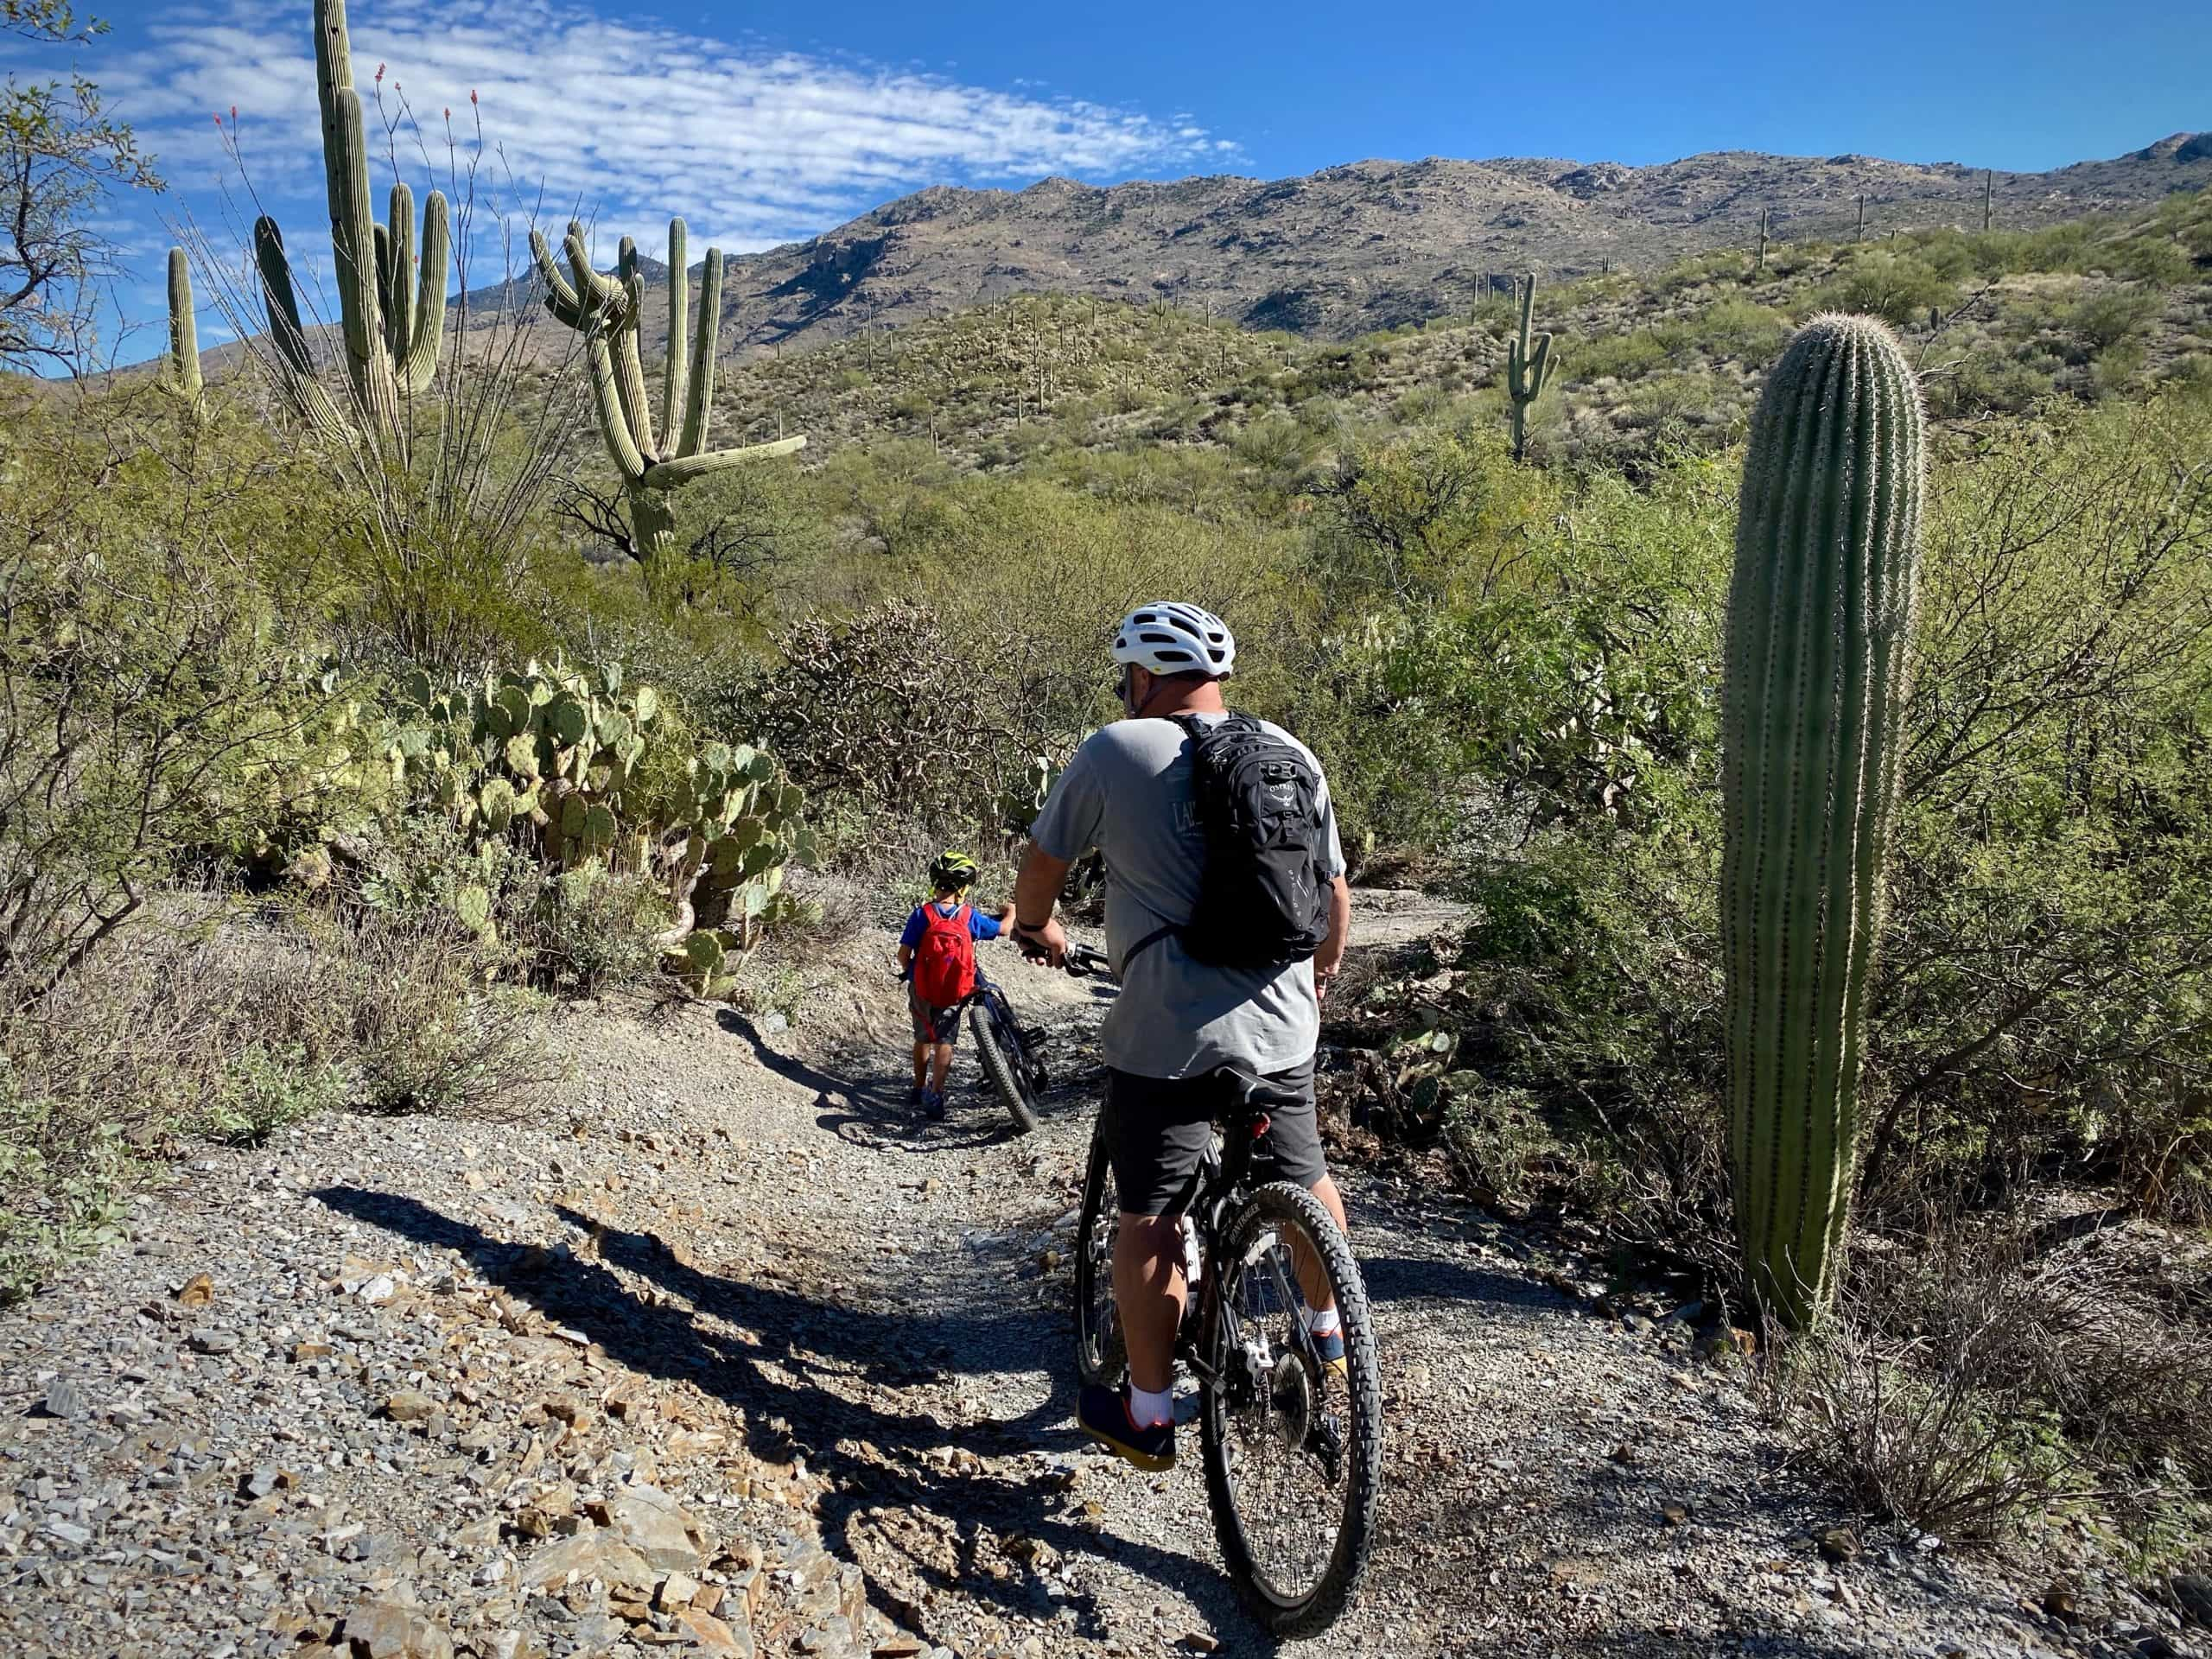 A family with young children riding mountain bikes on the Cactus Forest trail in Saguaro National Park (East) near Tucson, Arizona.